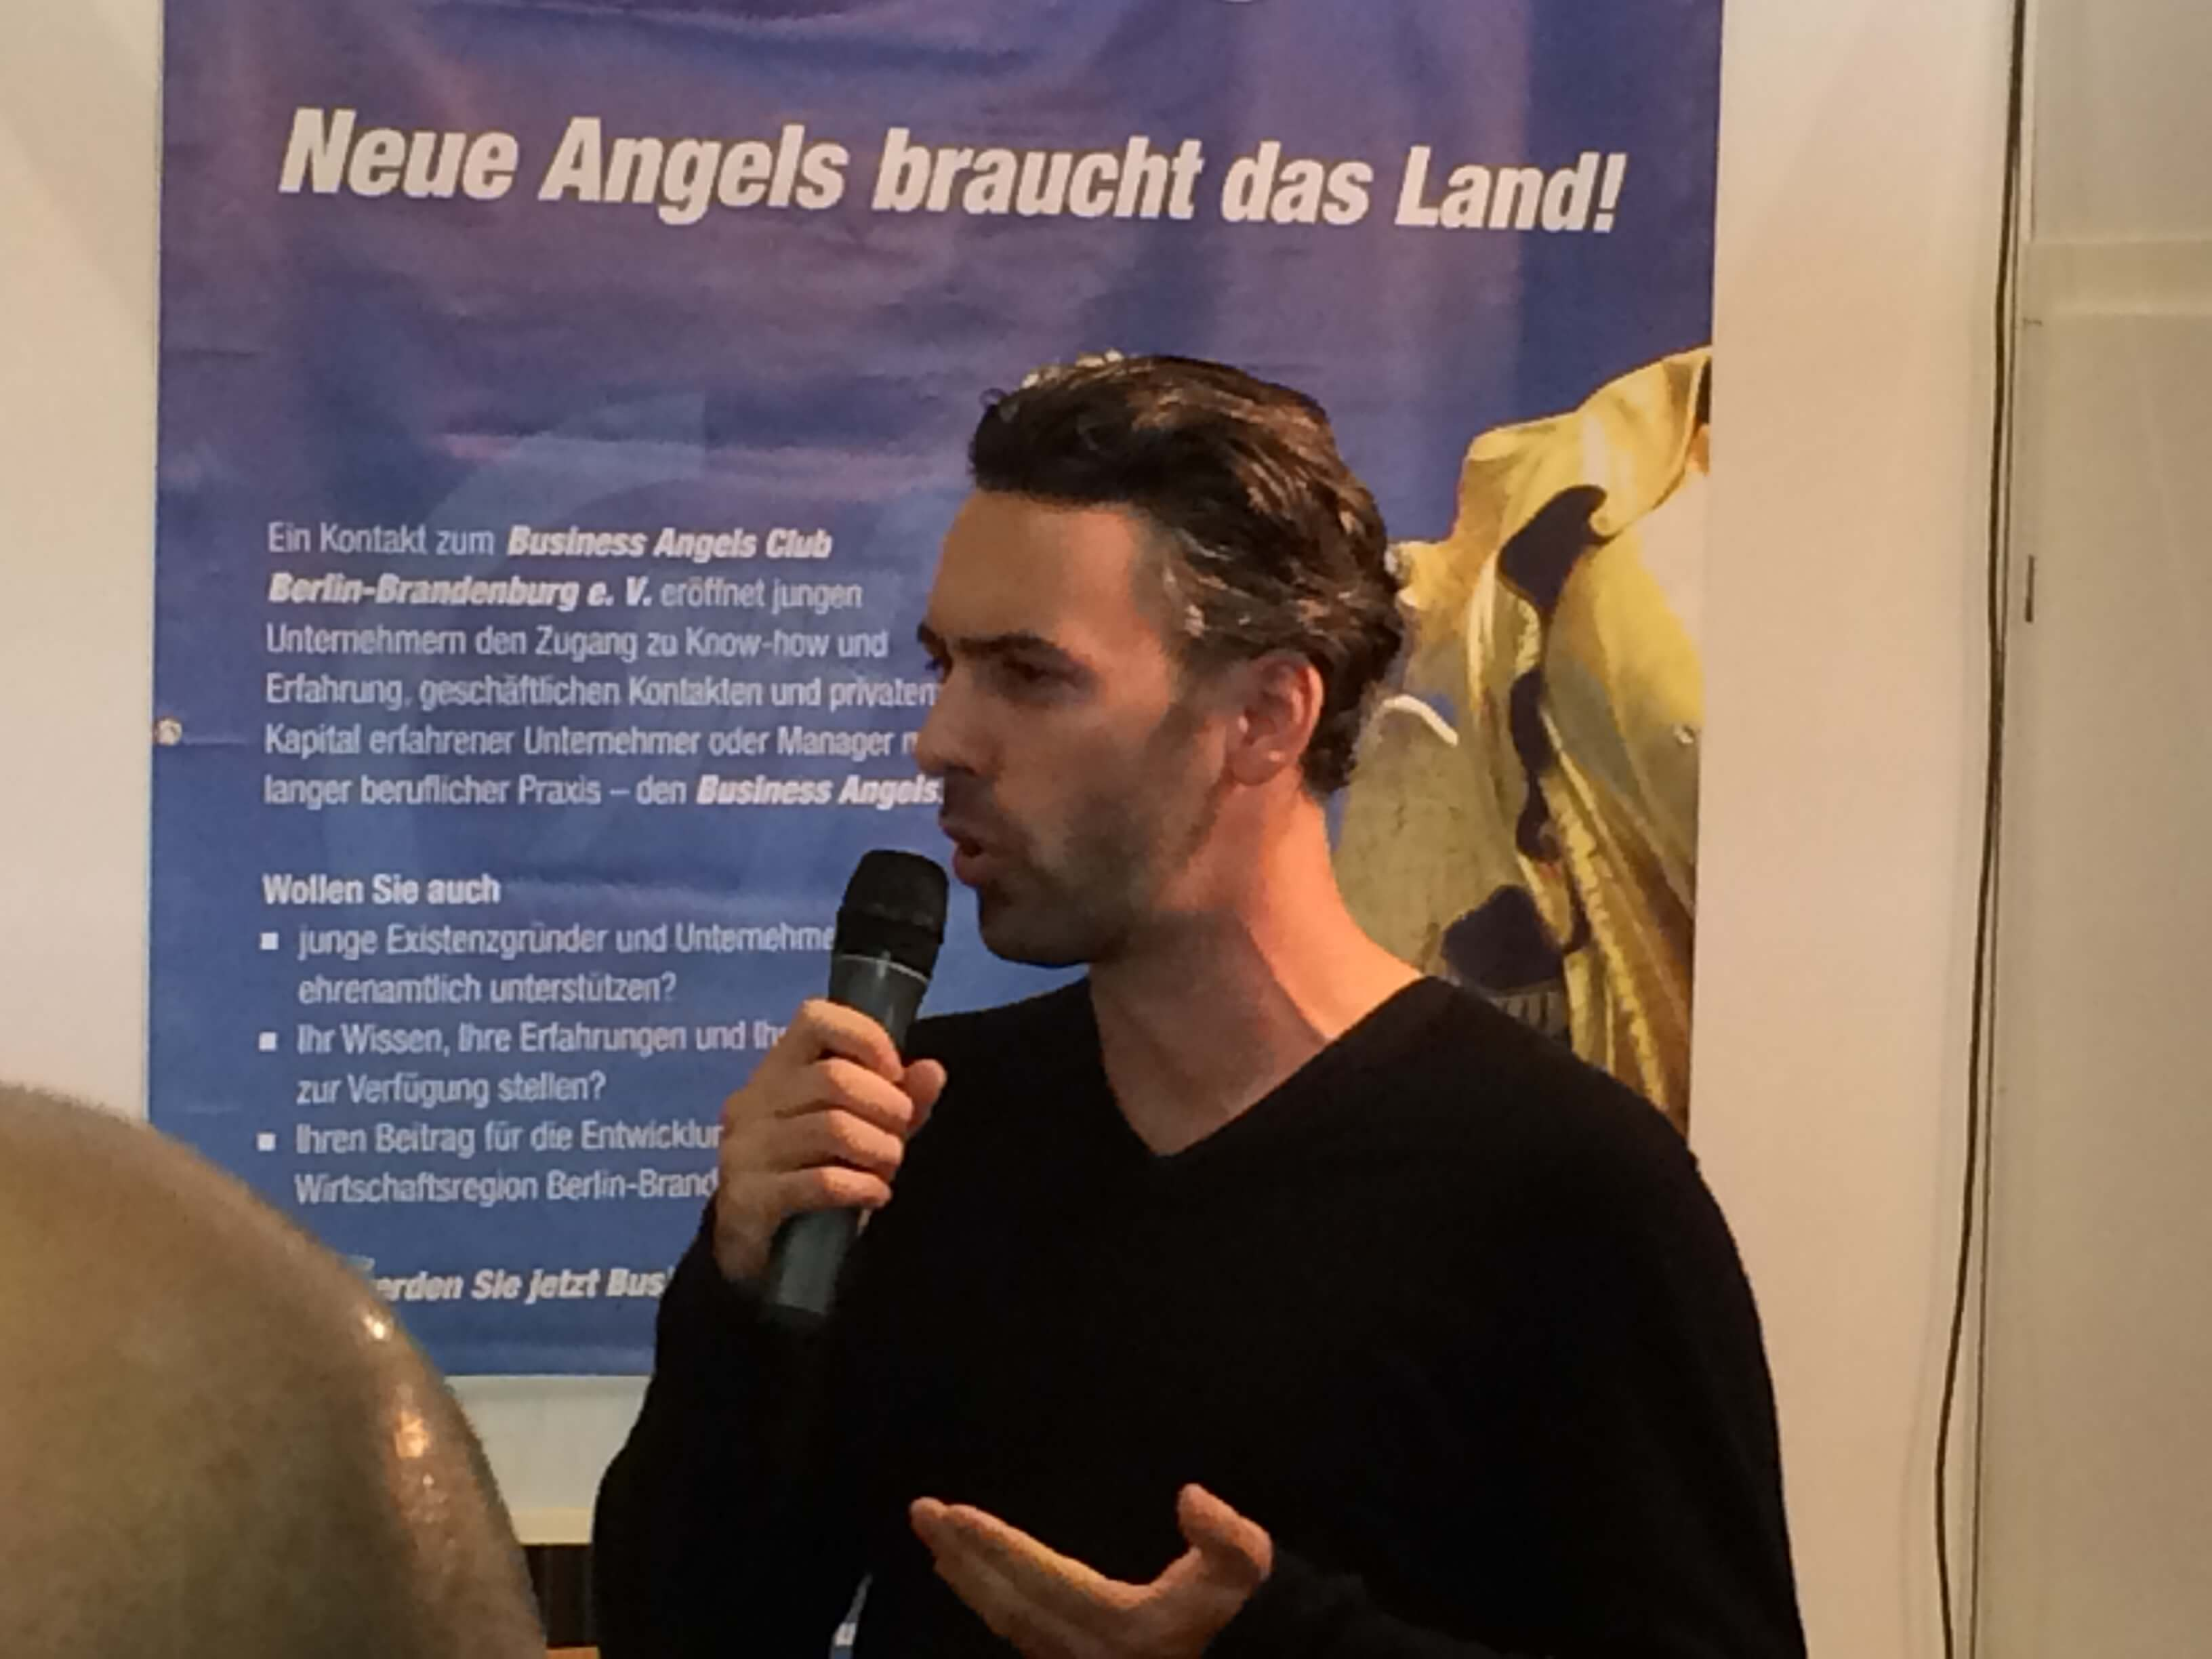 Speed dating mit business angels